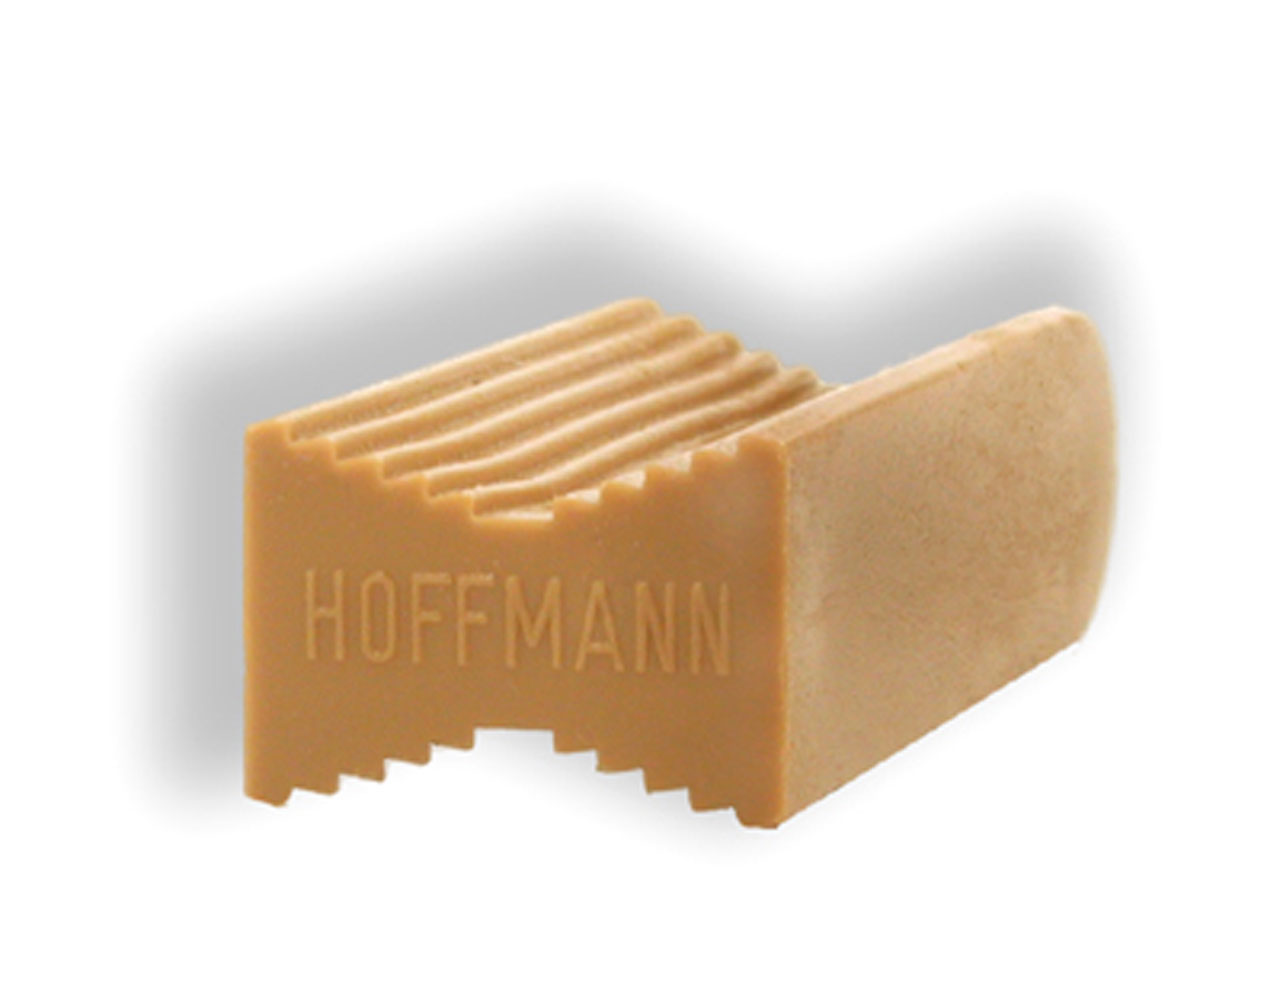 w3-hoffmann-dovetail-key-brown.jpg